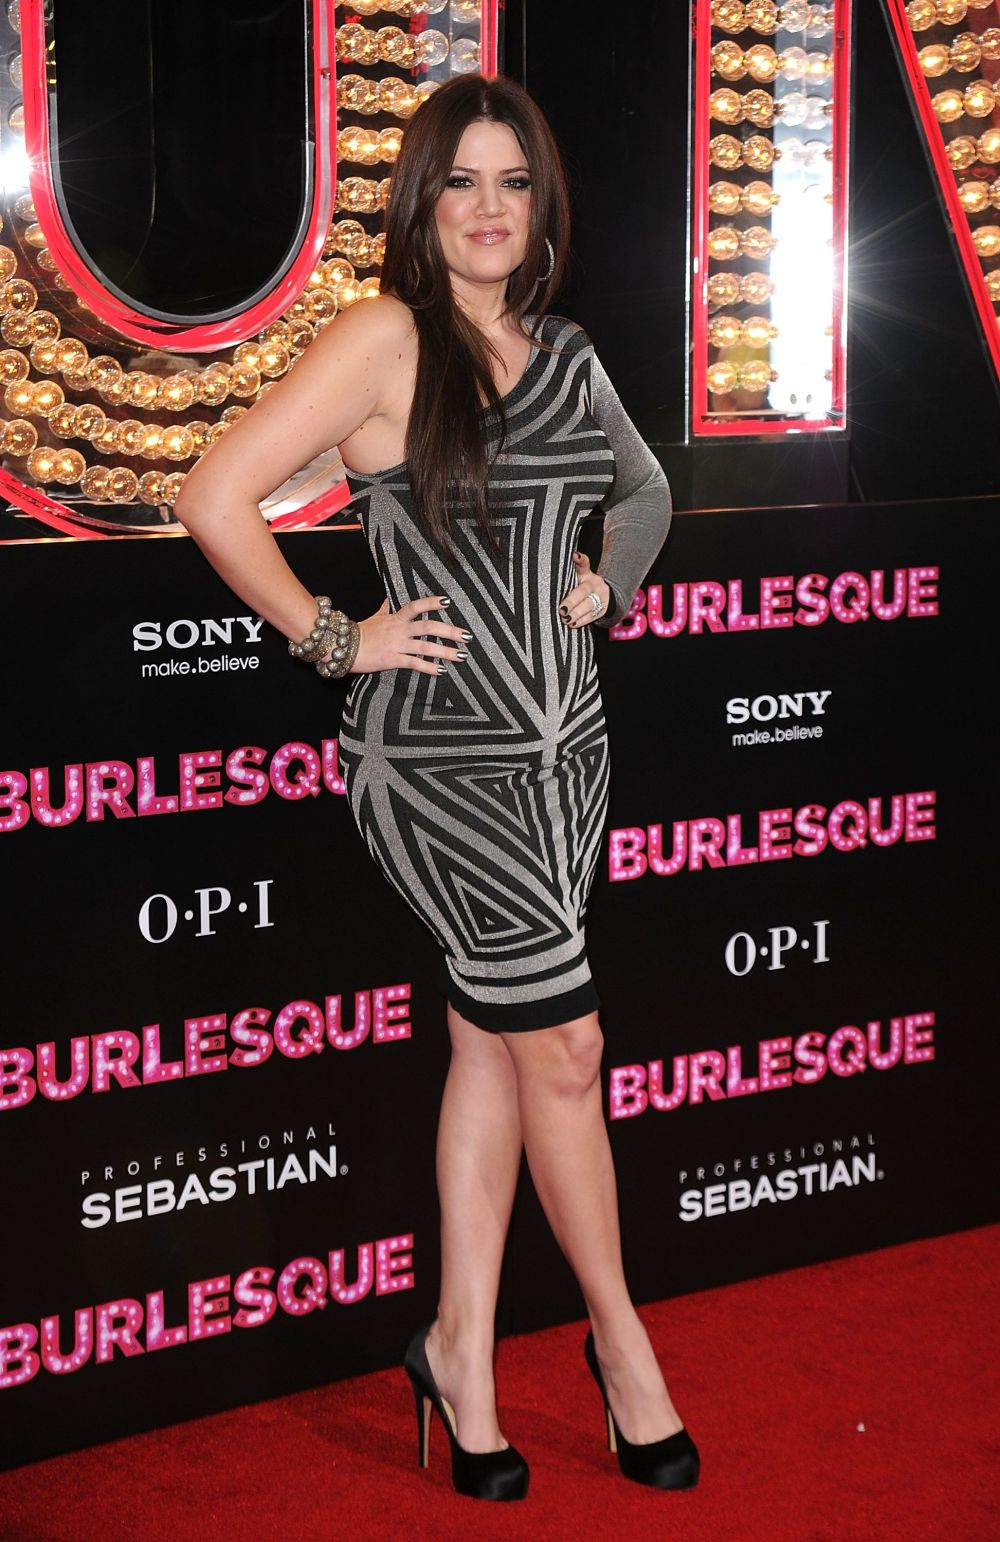 """At the premiere of Screen Gems' """"Burlesque"""" at Grauman's Chinese Theatre in Los Angeles."""